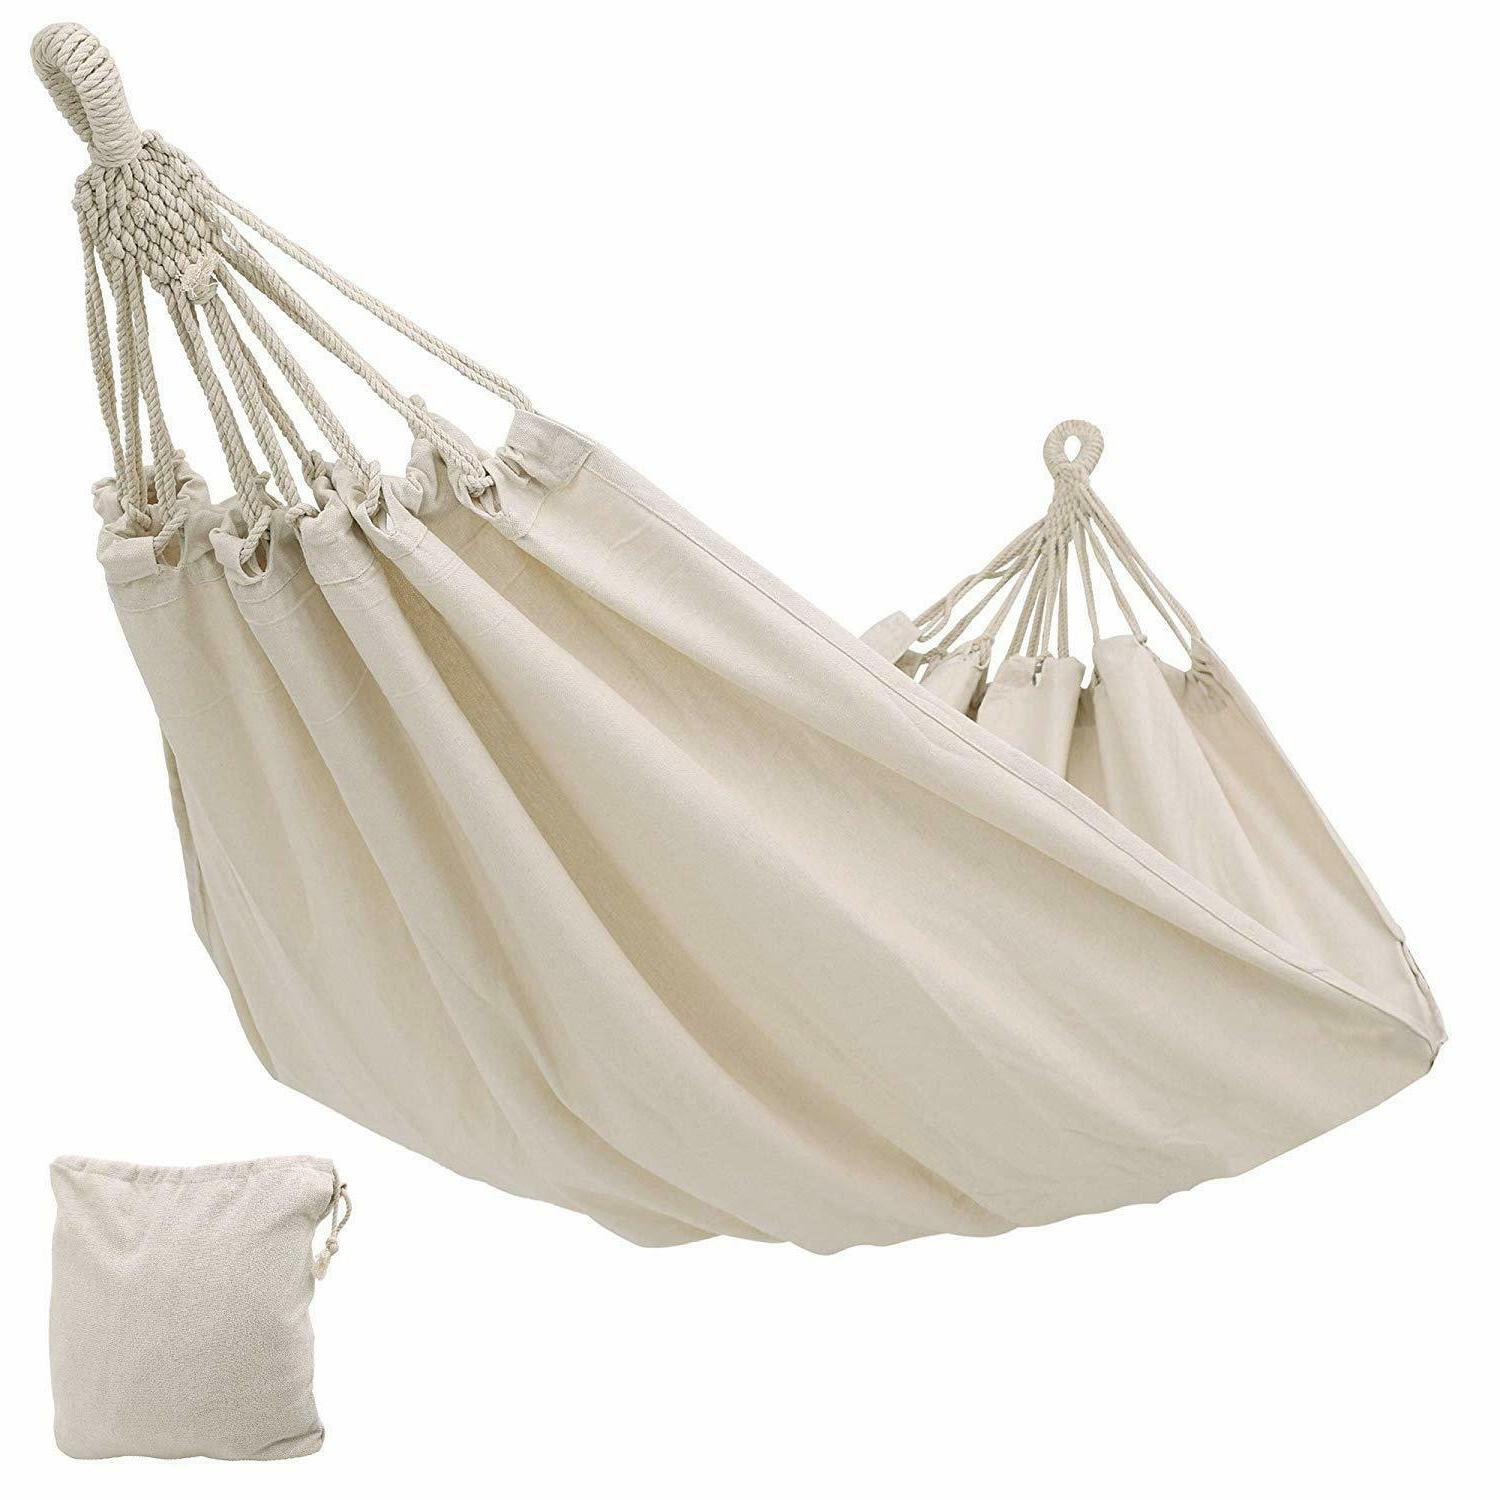 Double Camping Fabric Canvas Hammock Hanging Swing Bed for P